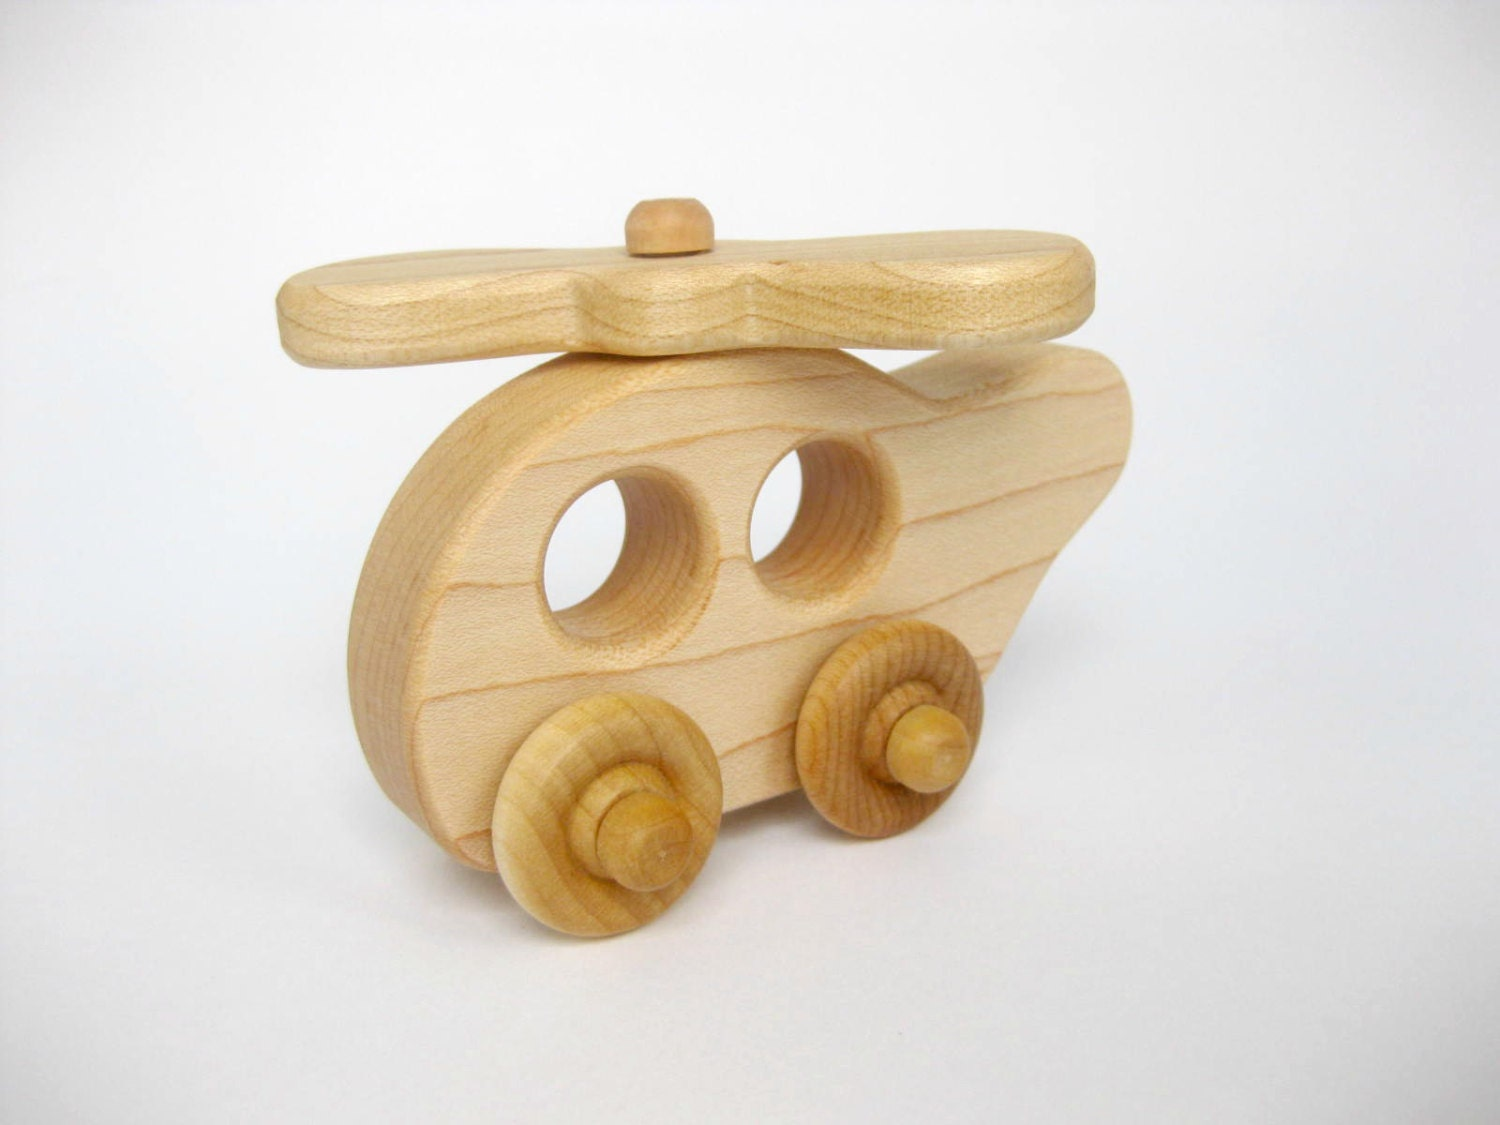 Wooden Toy Helicopter Little wooden toy helicopter